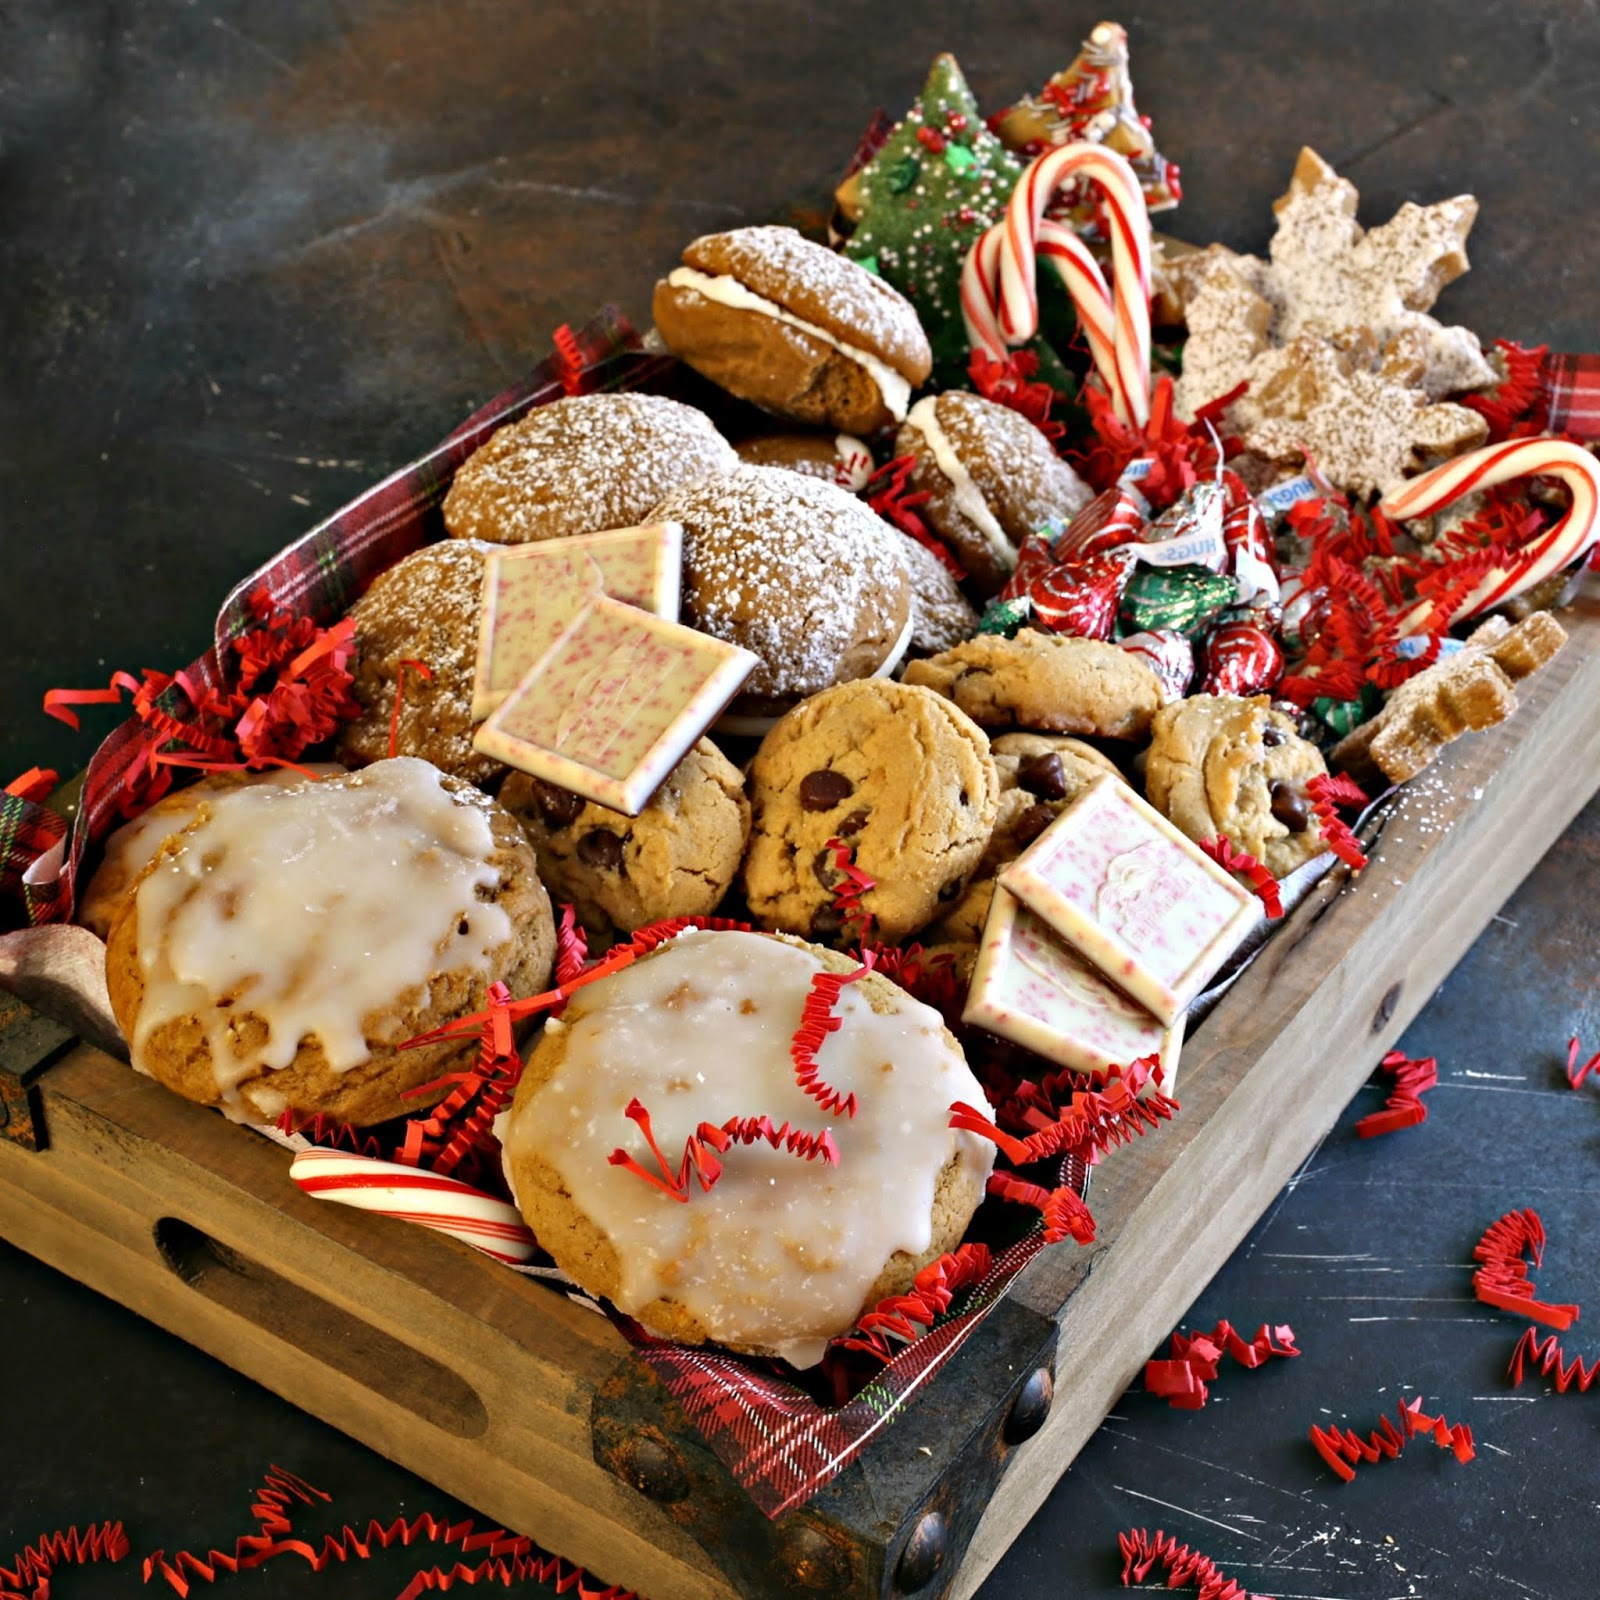 Recipe for a soft German gingerbread cookie with almonds and orange zest plus a holiday treat box.